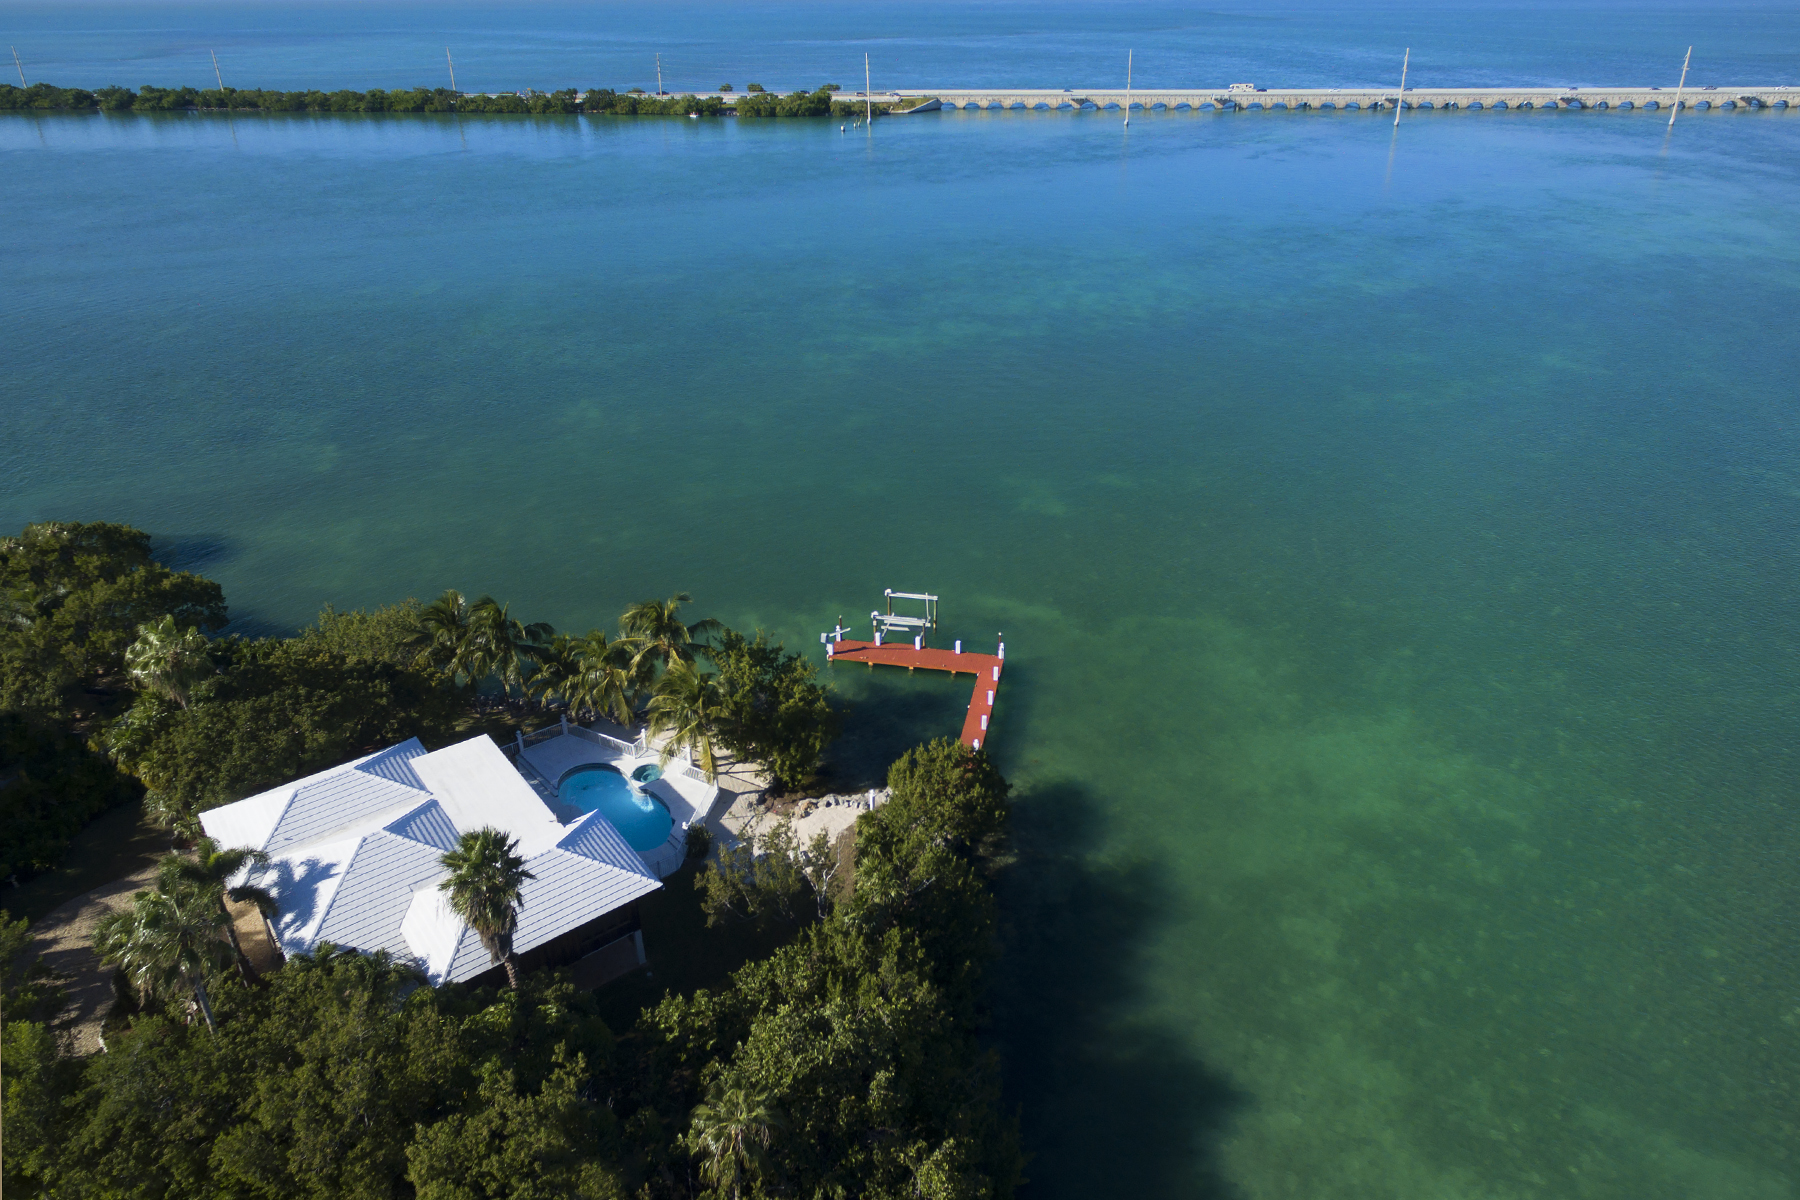 Casa Unifamiliar por un Venta en Sweeping Water Views 437 Harbour Drive Duck Key, Florida 33050 Estados Unidos